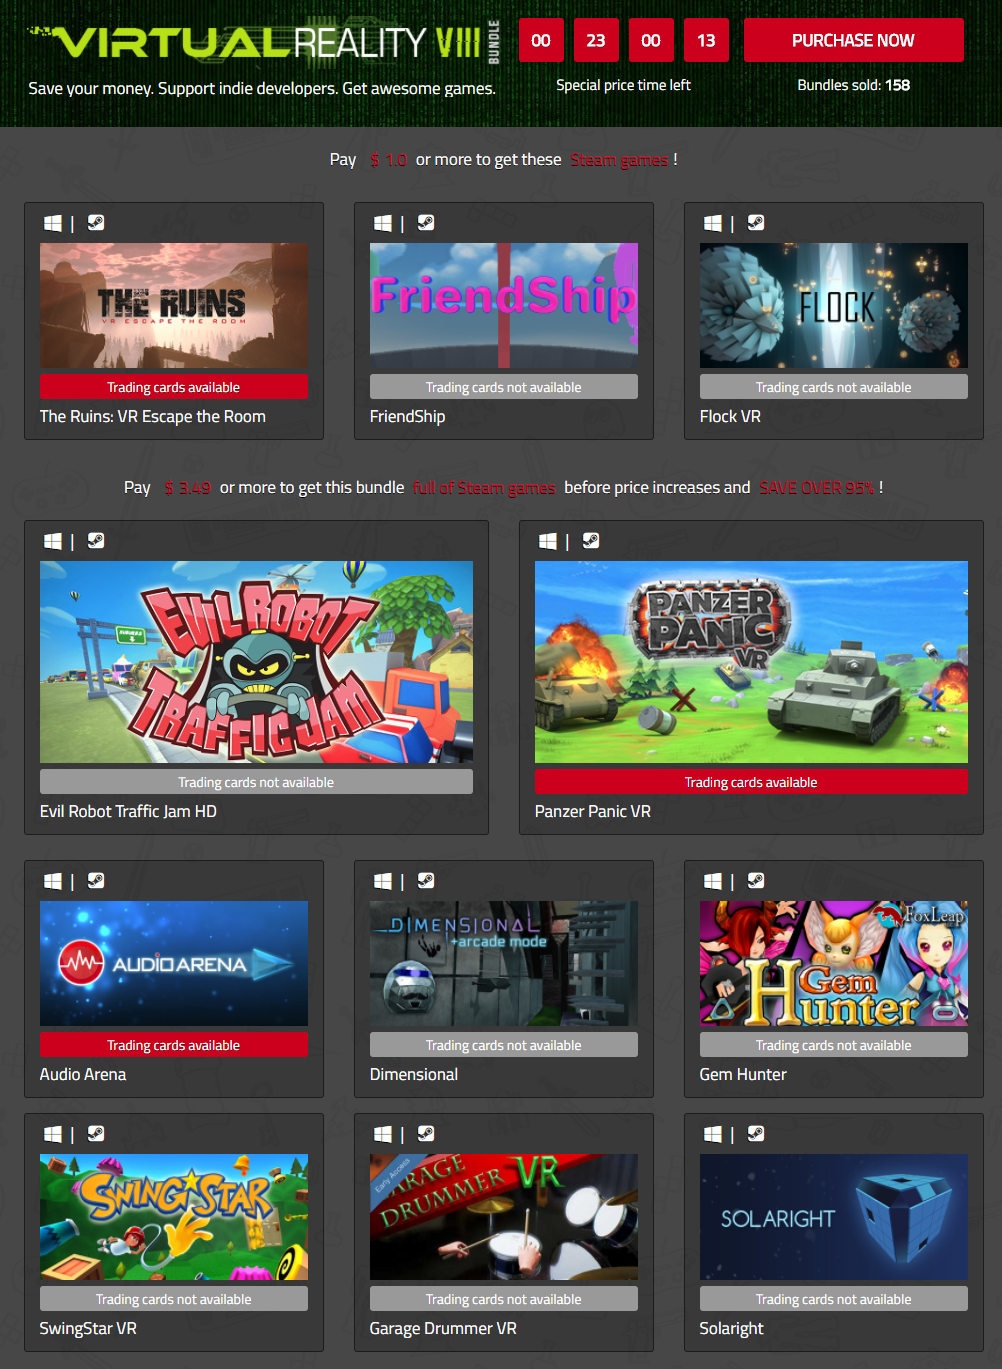 IndieGala Virtual Reality VIII Bundle of Steam games.png